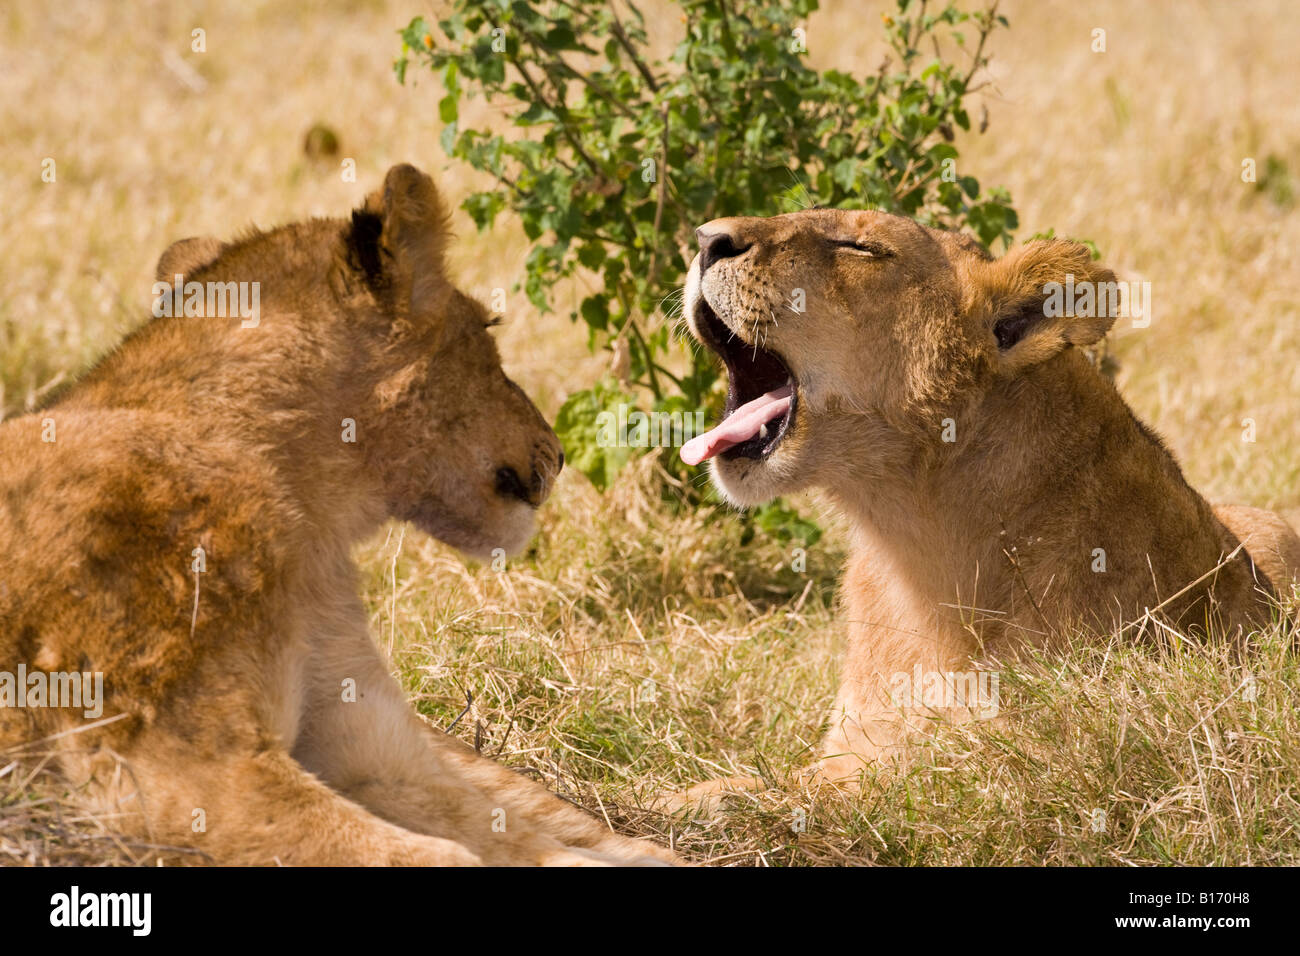 Closeup wildlife in funny pose baby lion cubs talking one yawning mouth wide open sticking tongue out other looking - Stock Image